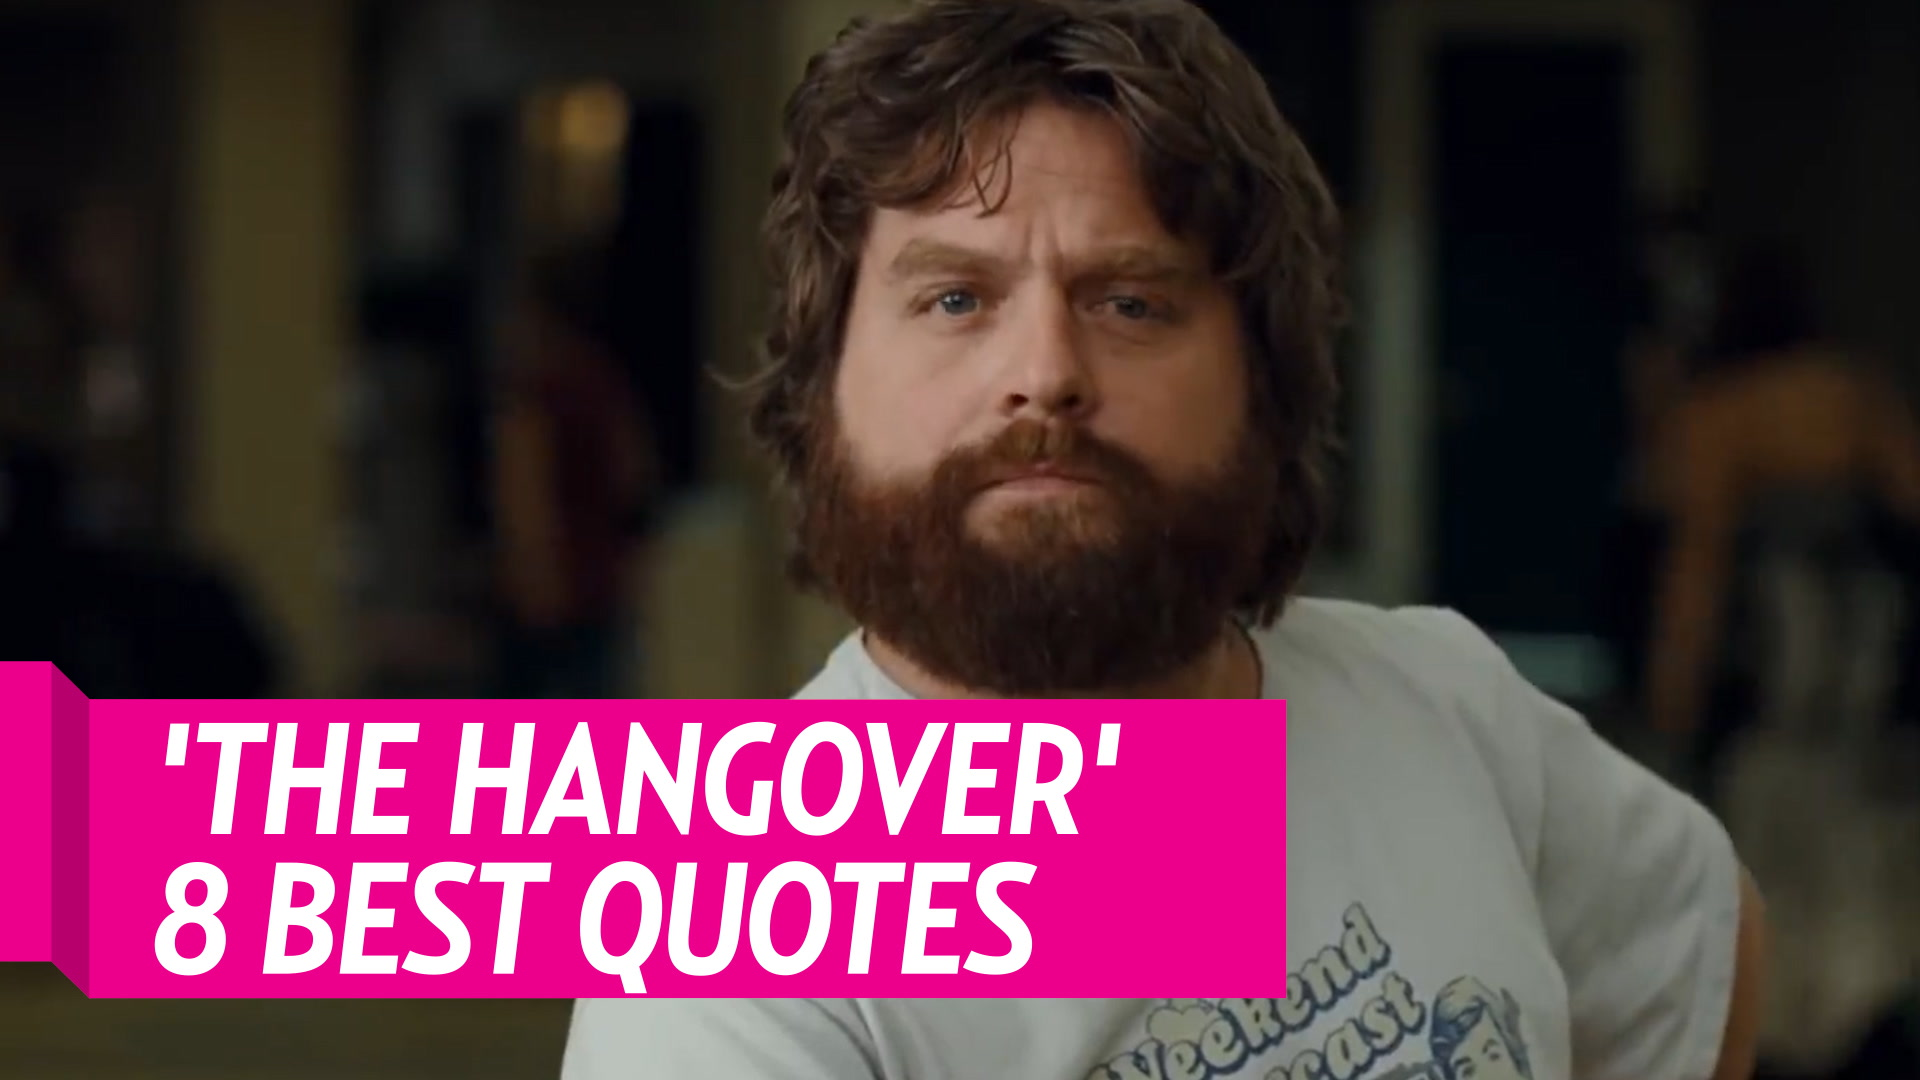 The Top 8 Quotes From The Hangover